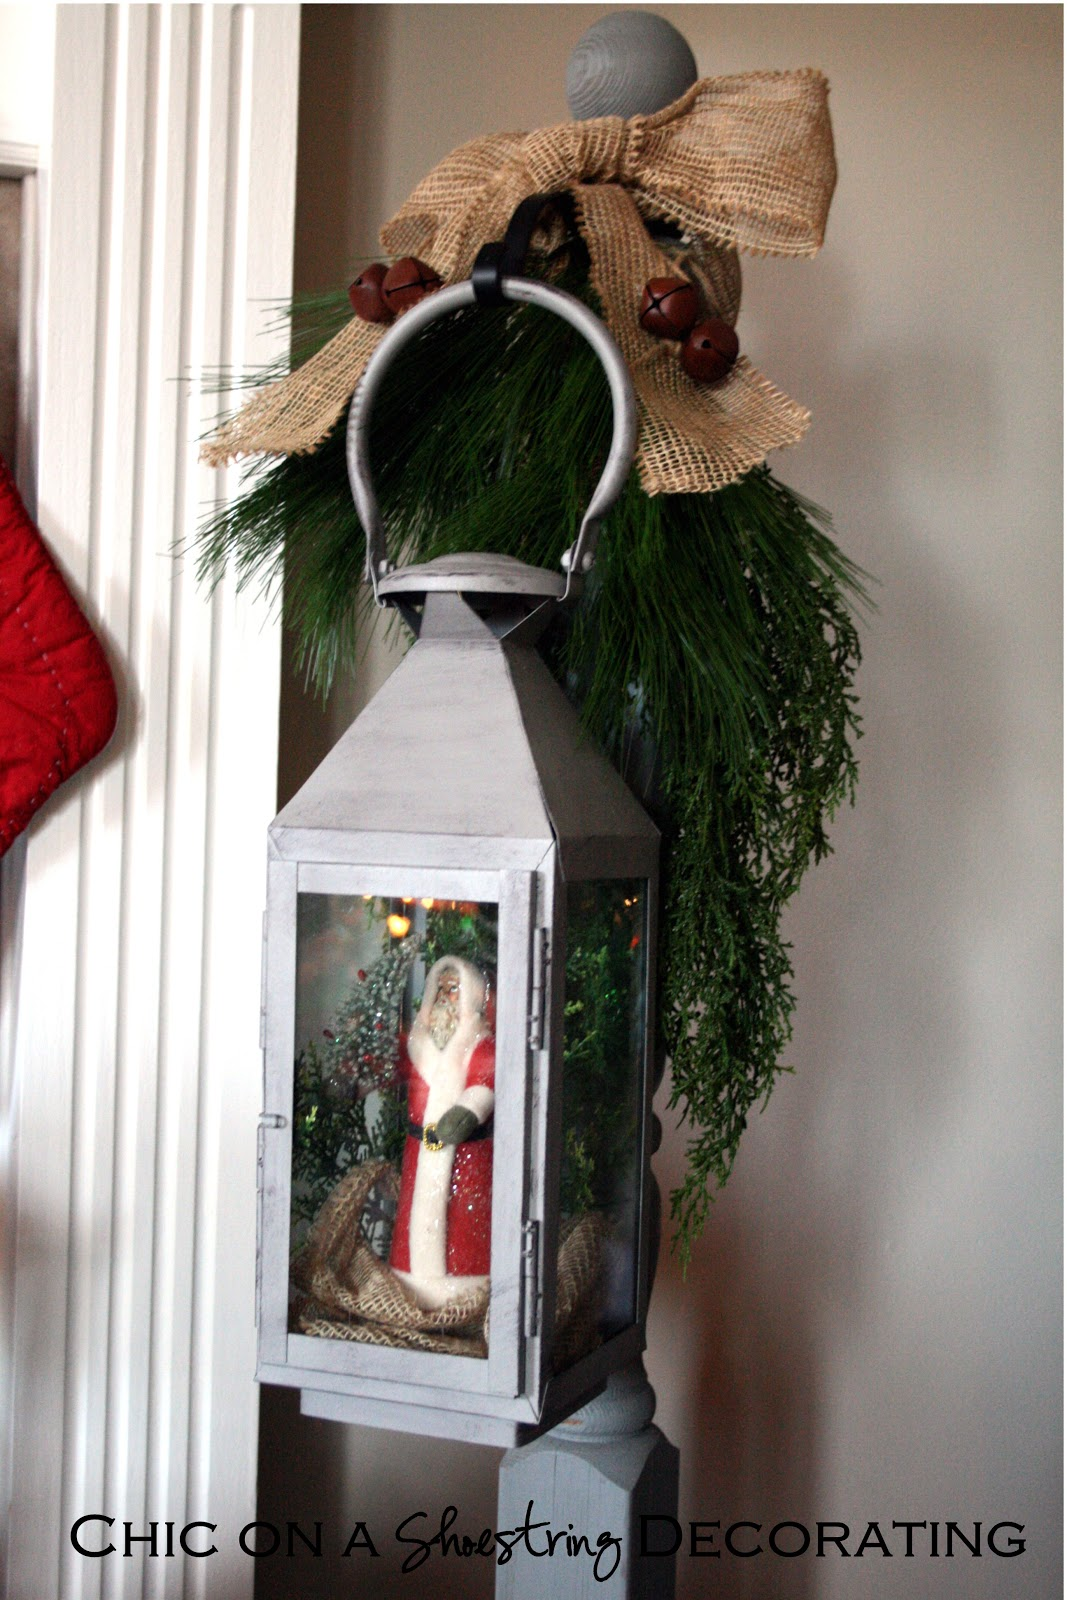 How To Decorate Small Second Living Room Off Of Kitchen: Chic On A Shoestring Decorating: Christmas Home Tour Part